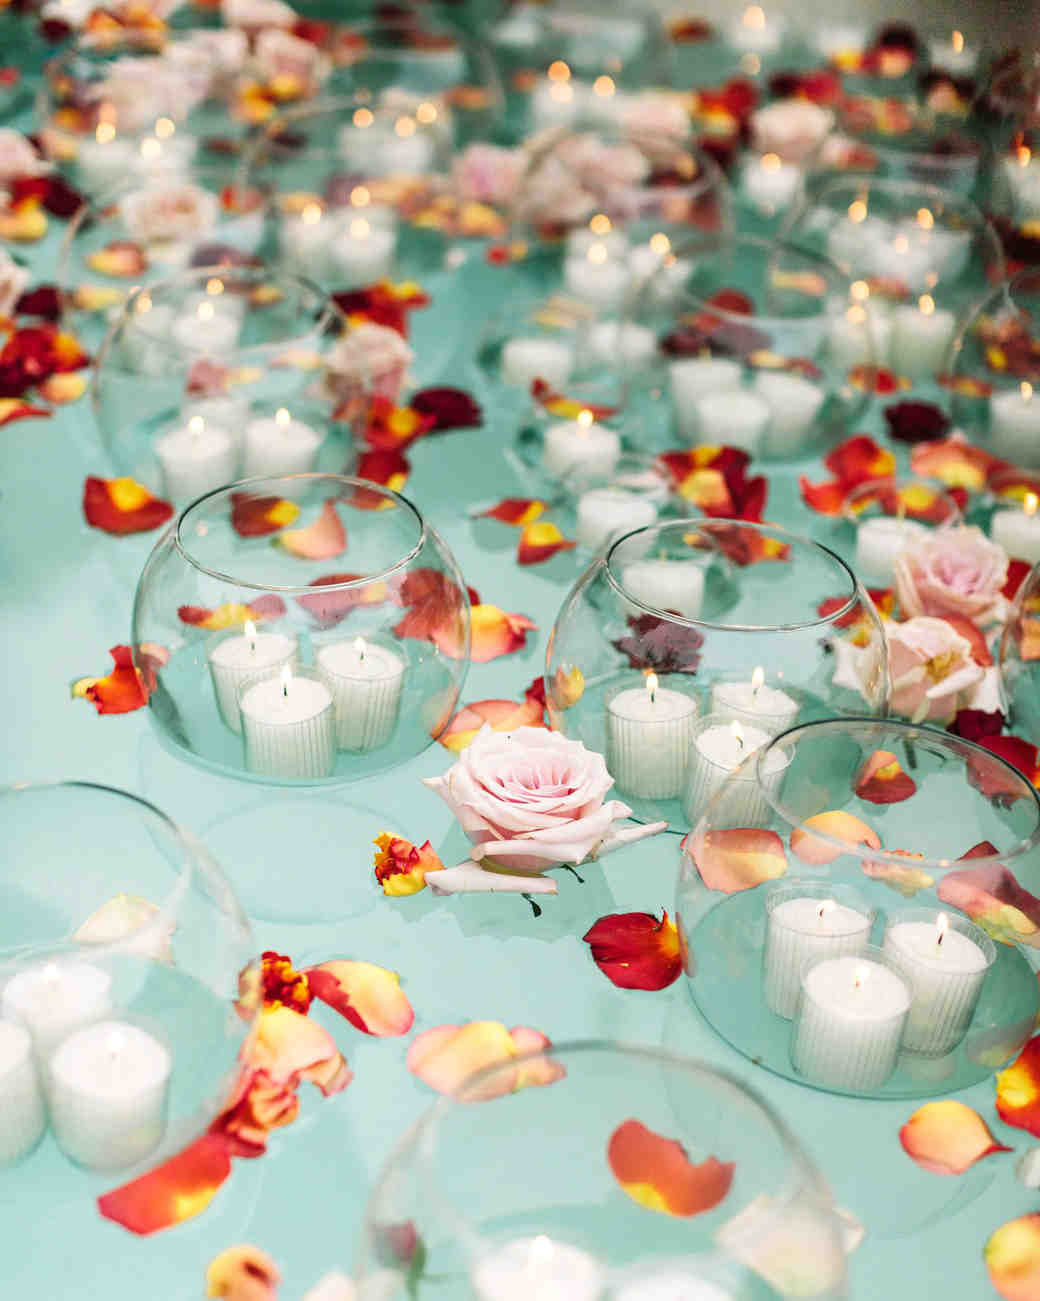 regina chris wedding floating petals candles